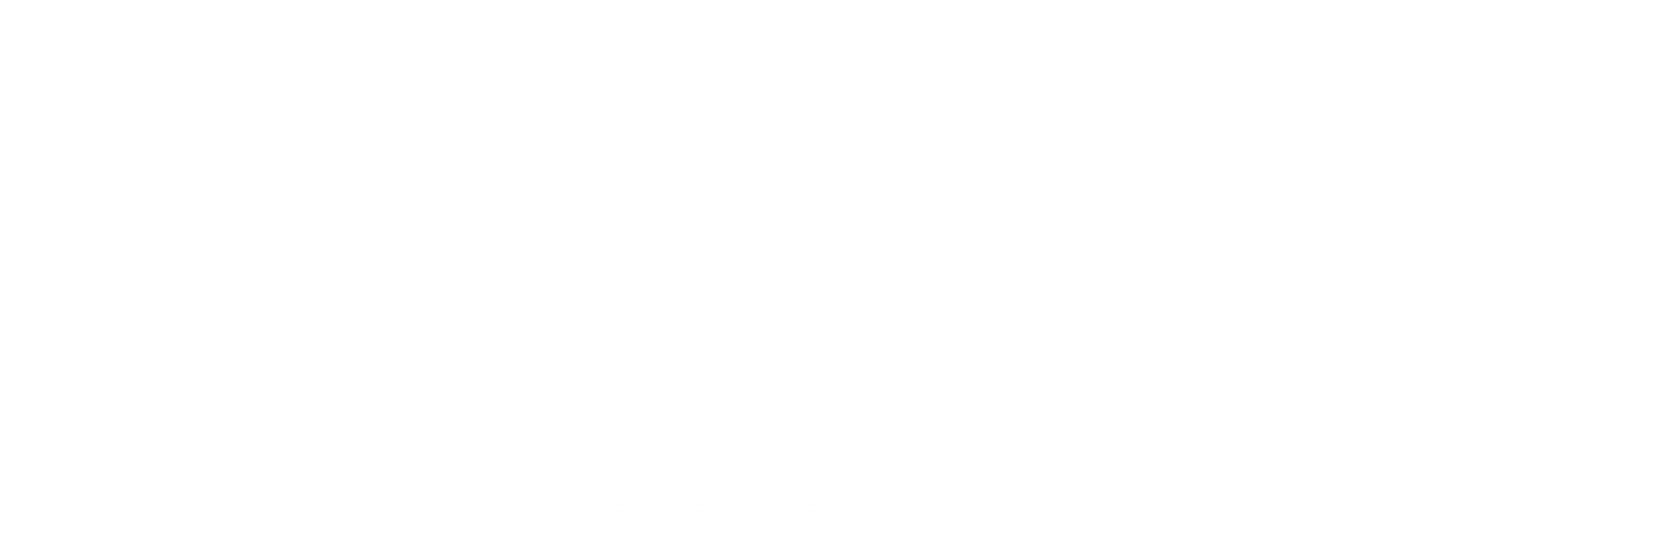 NOVASINERGIA, Revista Digital de Ciencia, Ingeniería y Tecnología.